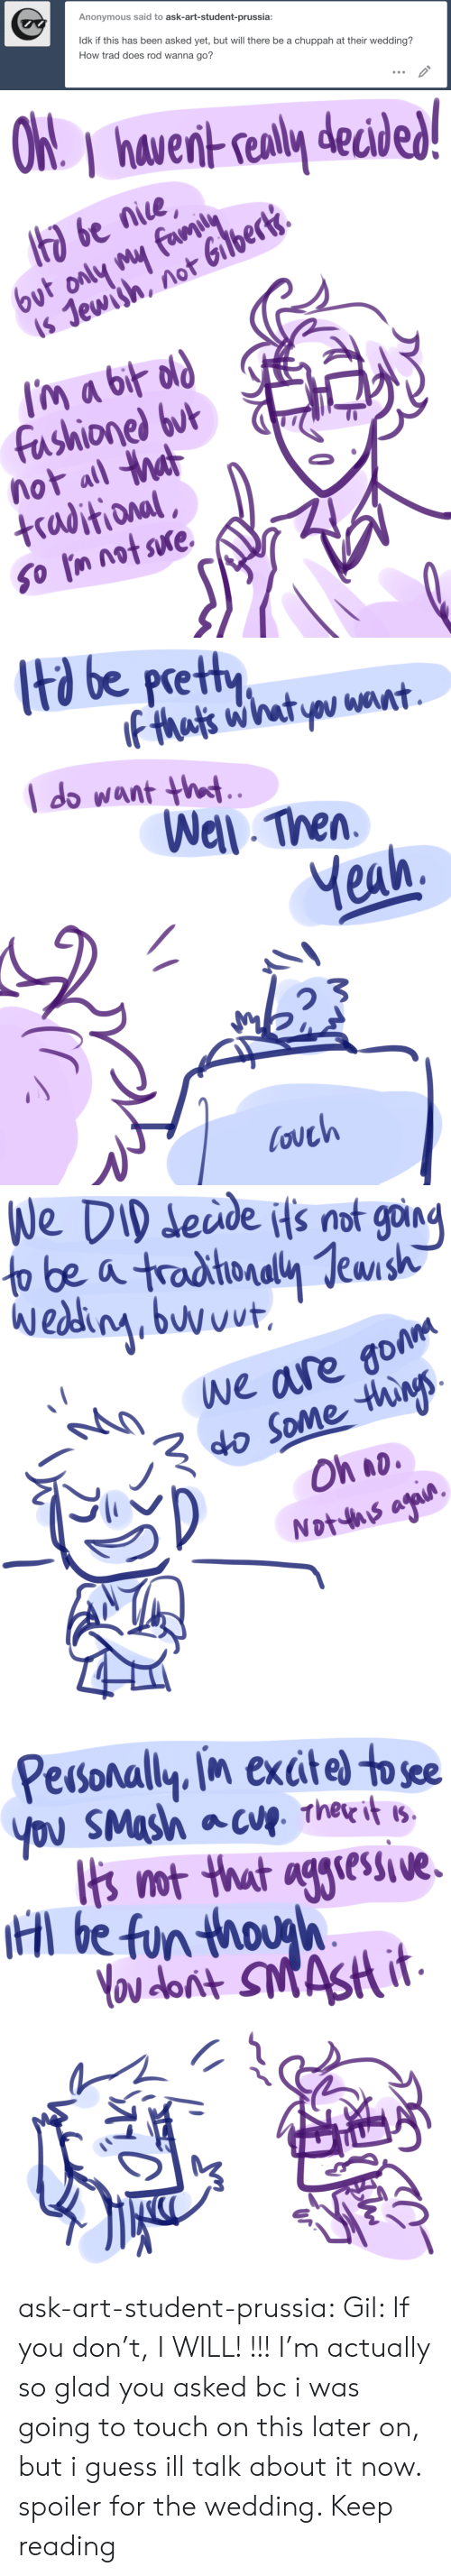 wel: Anonymous said to ask-art-student-prussia:  ldk if this has been asked yet, but will there be a chuppah at their wedding?  How trad does rod wanna go?   hawernt sealy decid  ta be nice  is Jewish, not Gilbert.  fashionel but  not all a  +raditional   td be pretty  l do want ht  Wel Then  Yeah,  ouch   eude Hs not goin  We are go  o Some thins  Oh ao   Pesonally in exctel to see  Ibs ot that aglese.  l be fun thouh ask-art-student-prussia:  Gil: If you don't, I WILL! !!! I'm actually so glad you asked bc i was going to touch on this later on, but i guess ill talk about it now. spoiler for the wedding. Keep reading